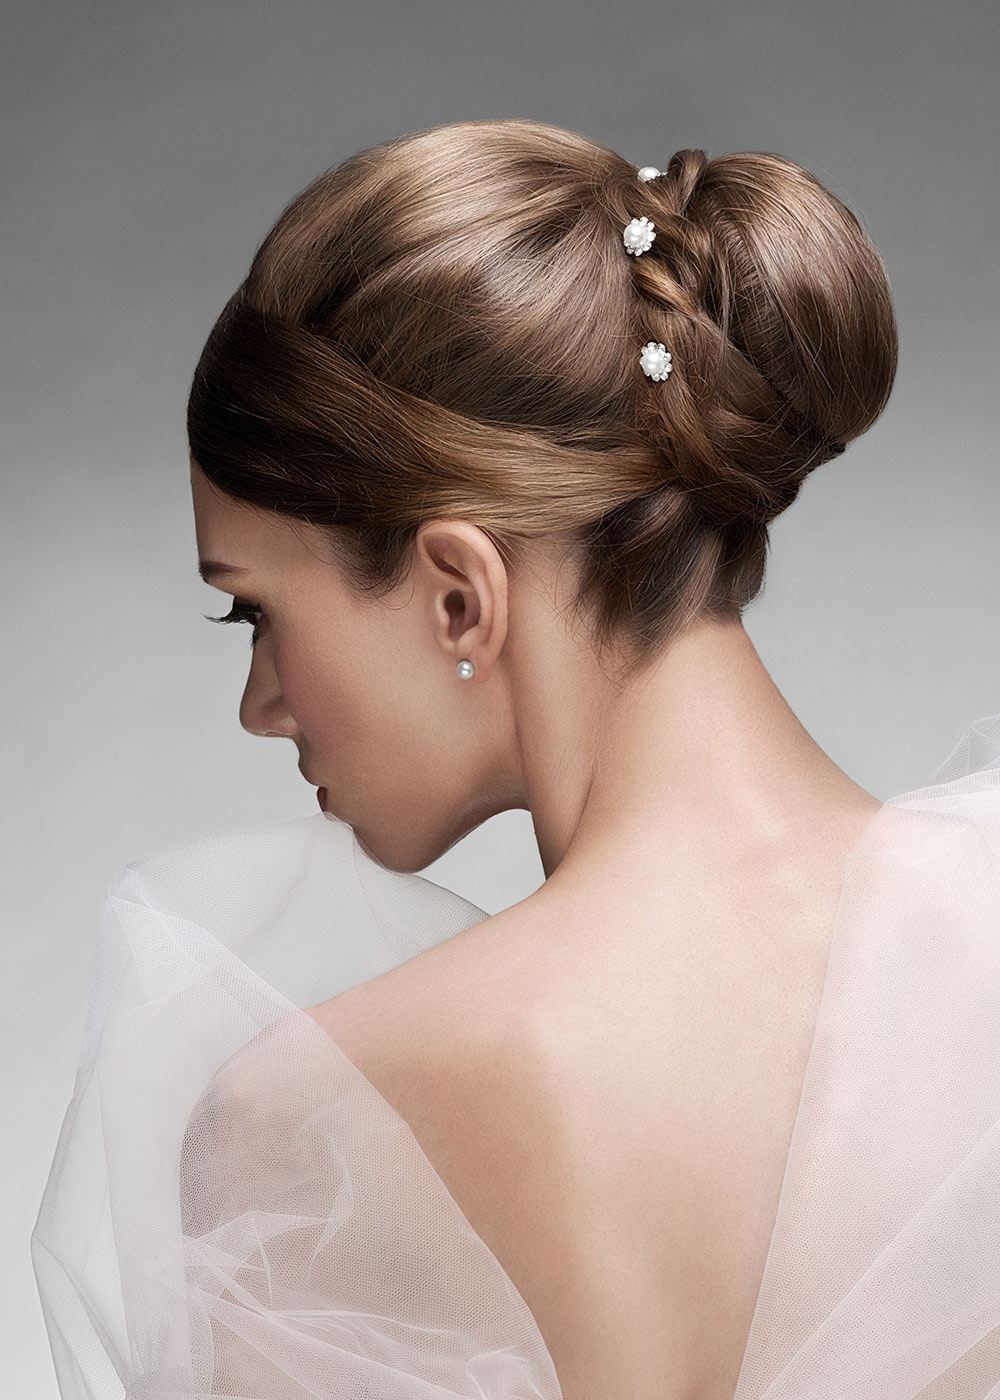 Wedding Hair Up Do on Blonde Hair